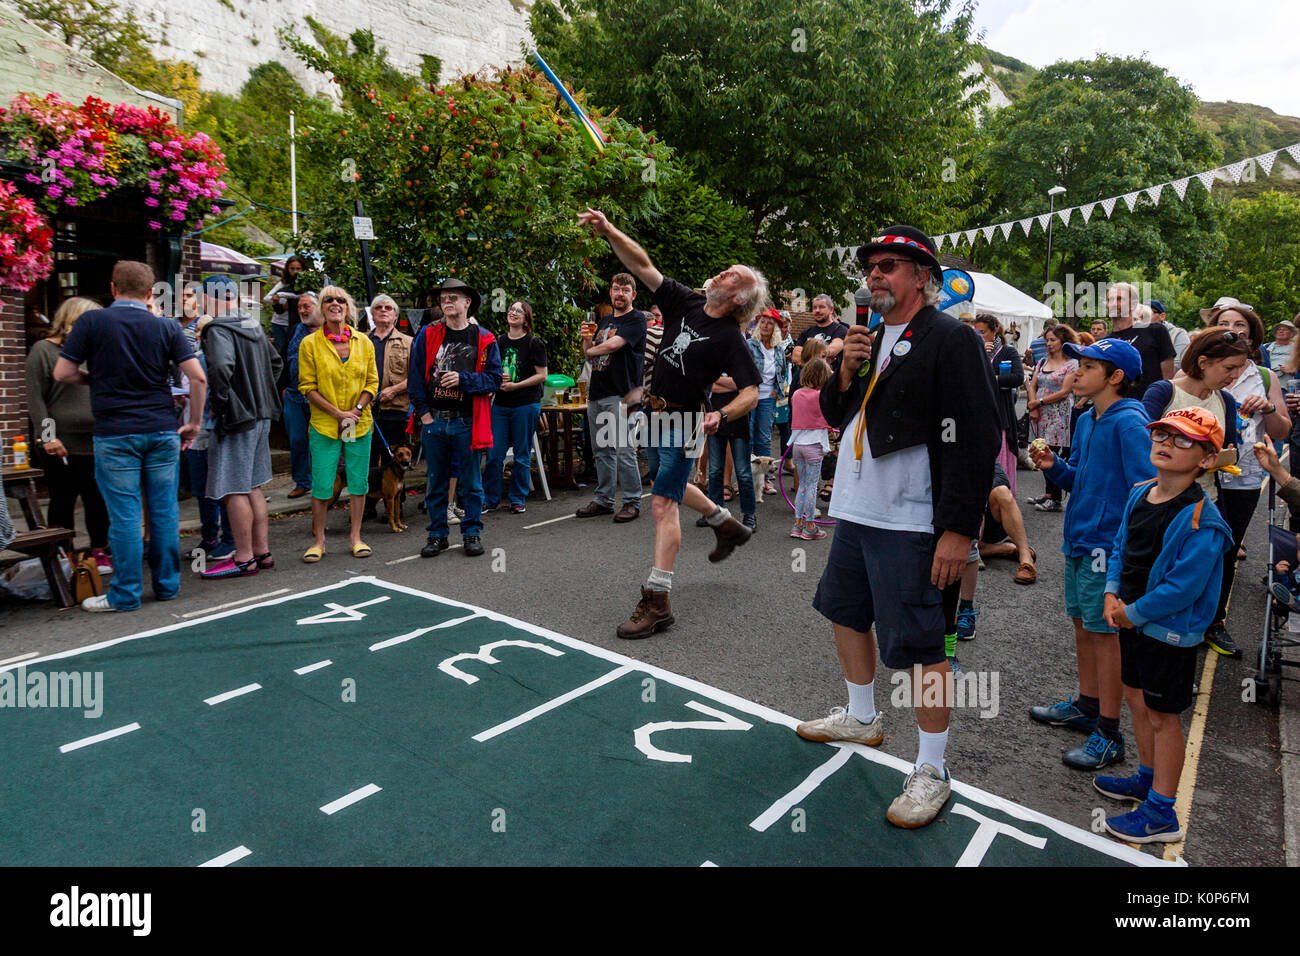 Throwing The 'Javelin' Contest At The Annual South Street Sports Day and Dog Show, Lewes, East Sussex, UK - Stock Image